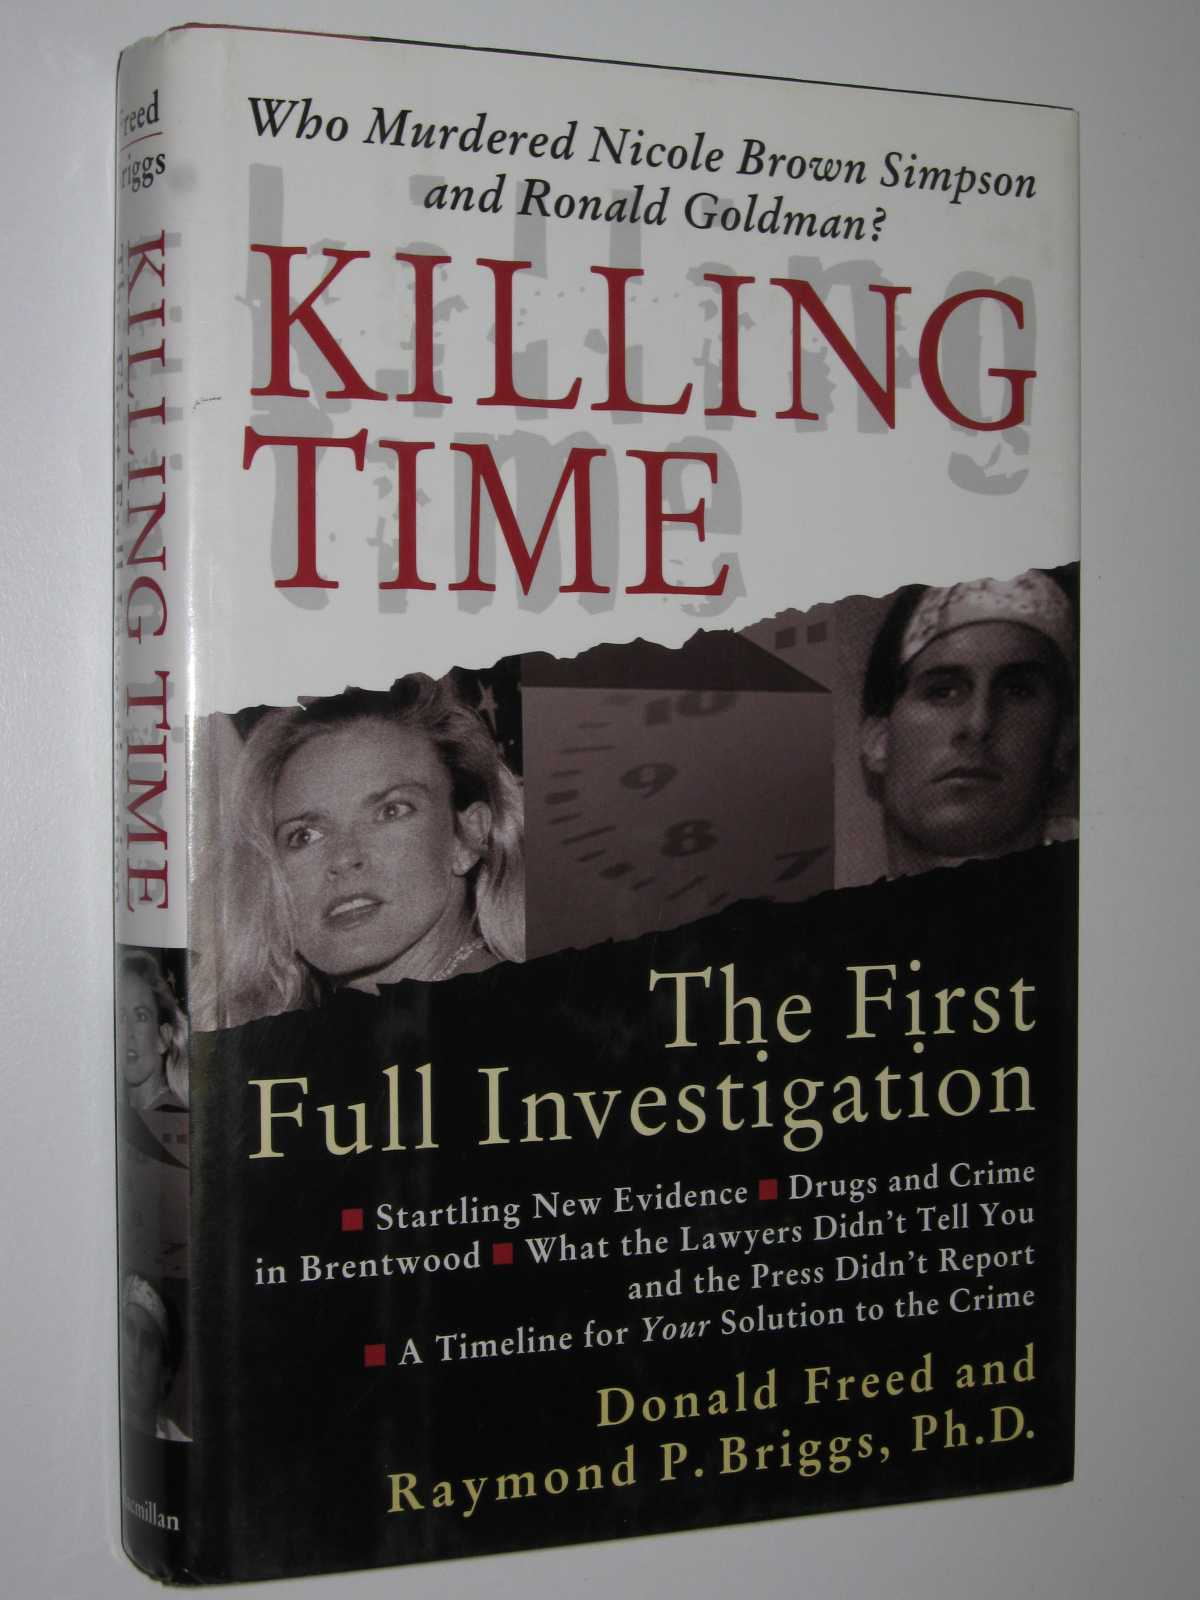 Image for Killing Time : The First Full Investigation into the Unsolved Murders of Nicole Brown Simpson and Ronald Goldman